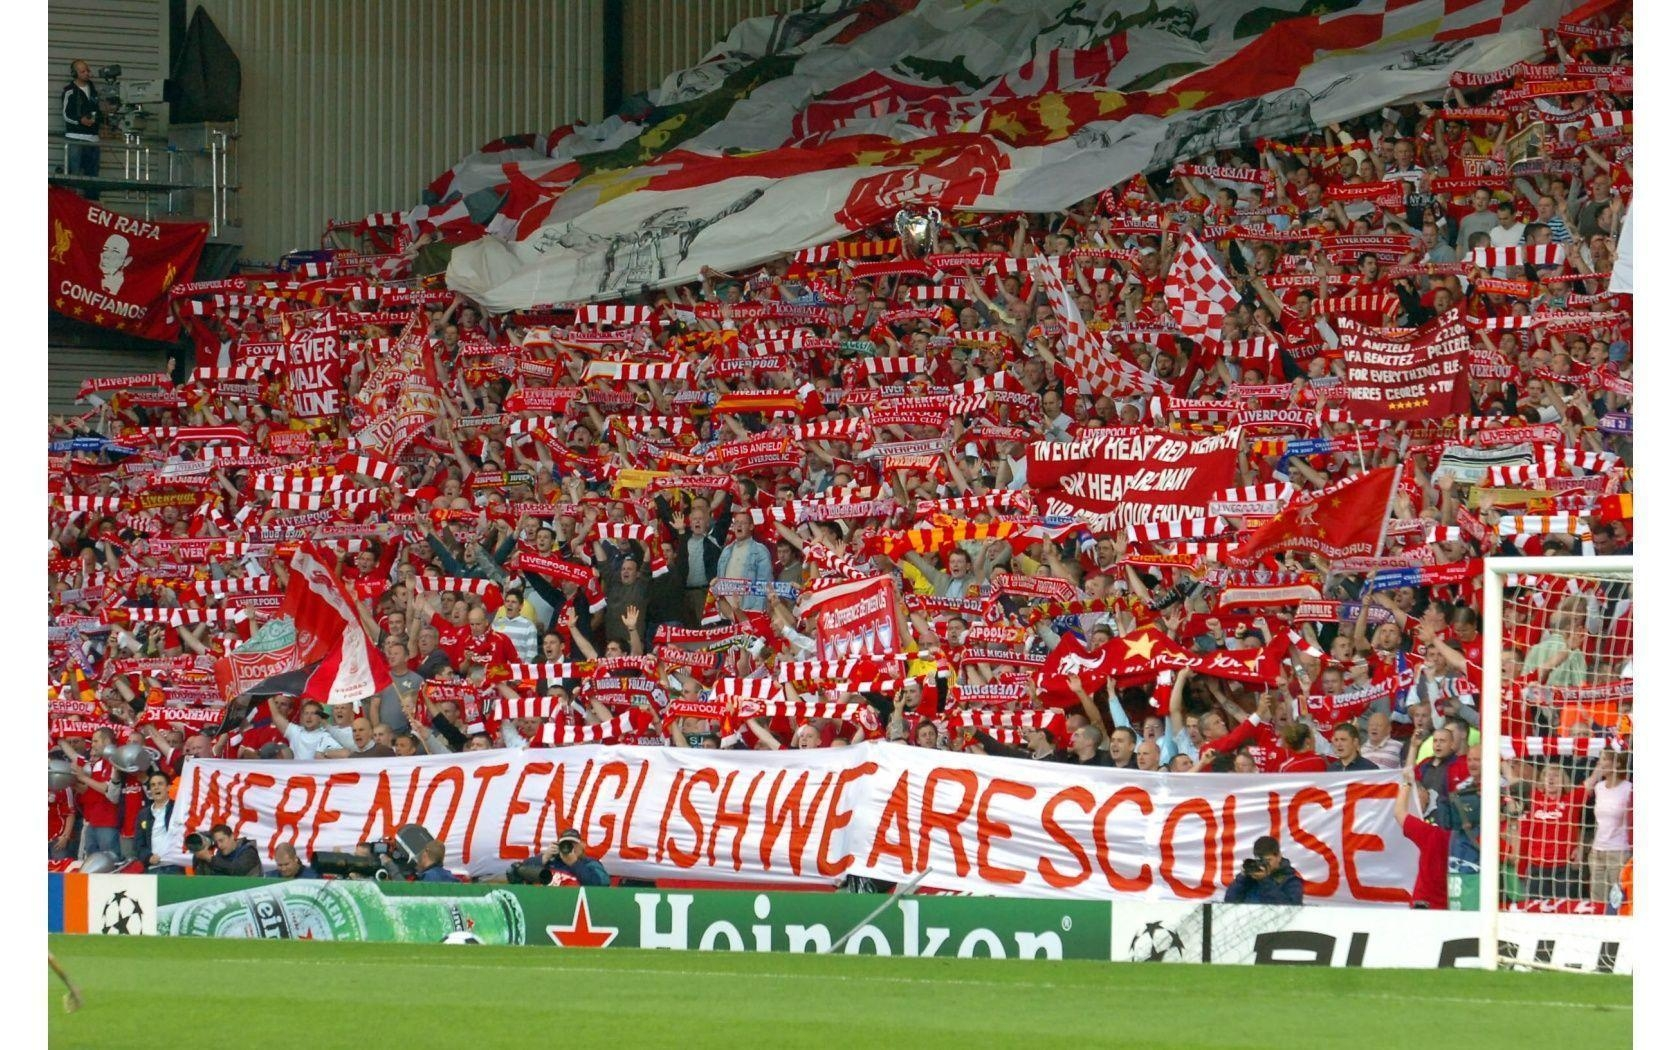 Liverpool Football Club Hd Wallpapers And Background Images Yl Computing